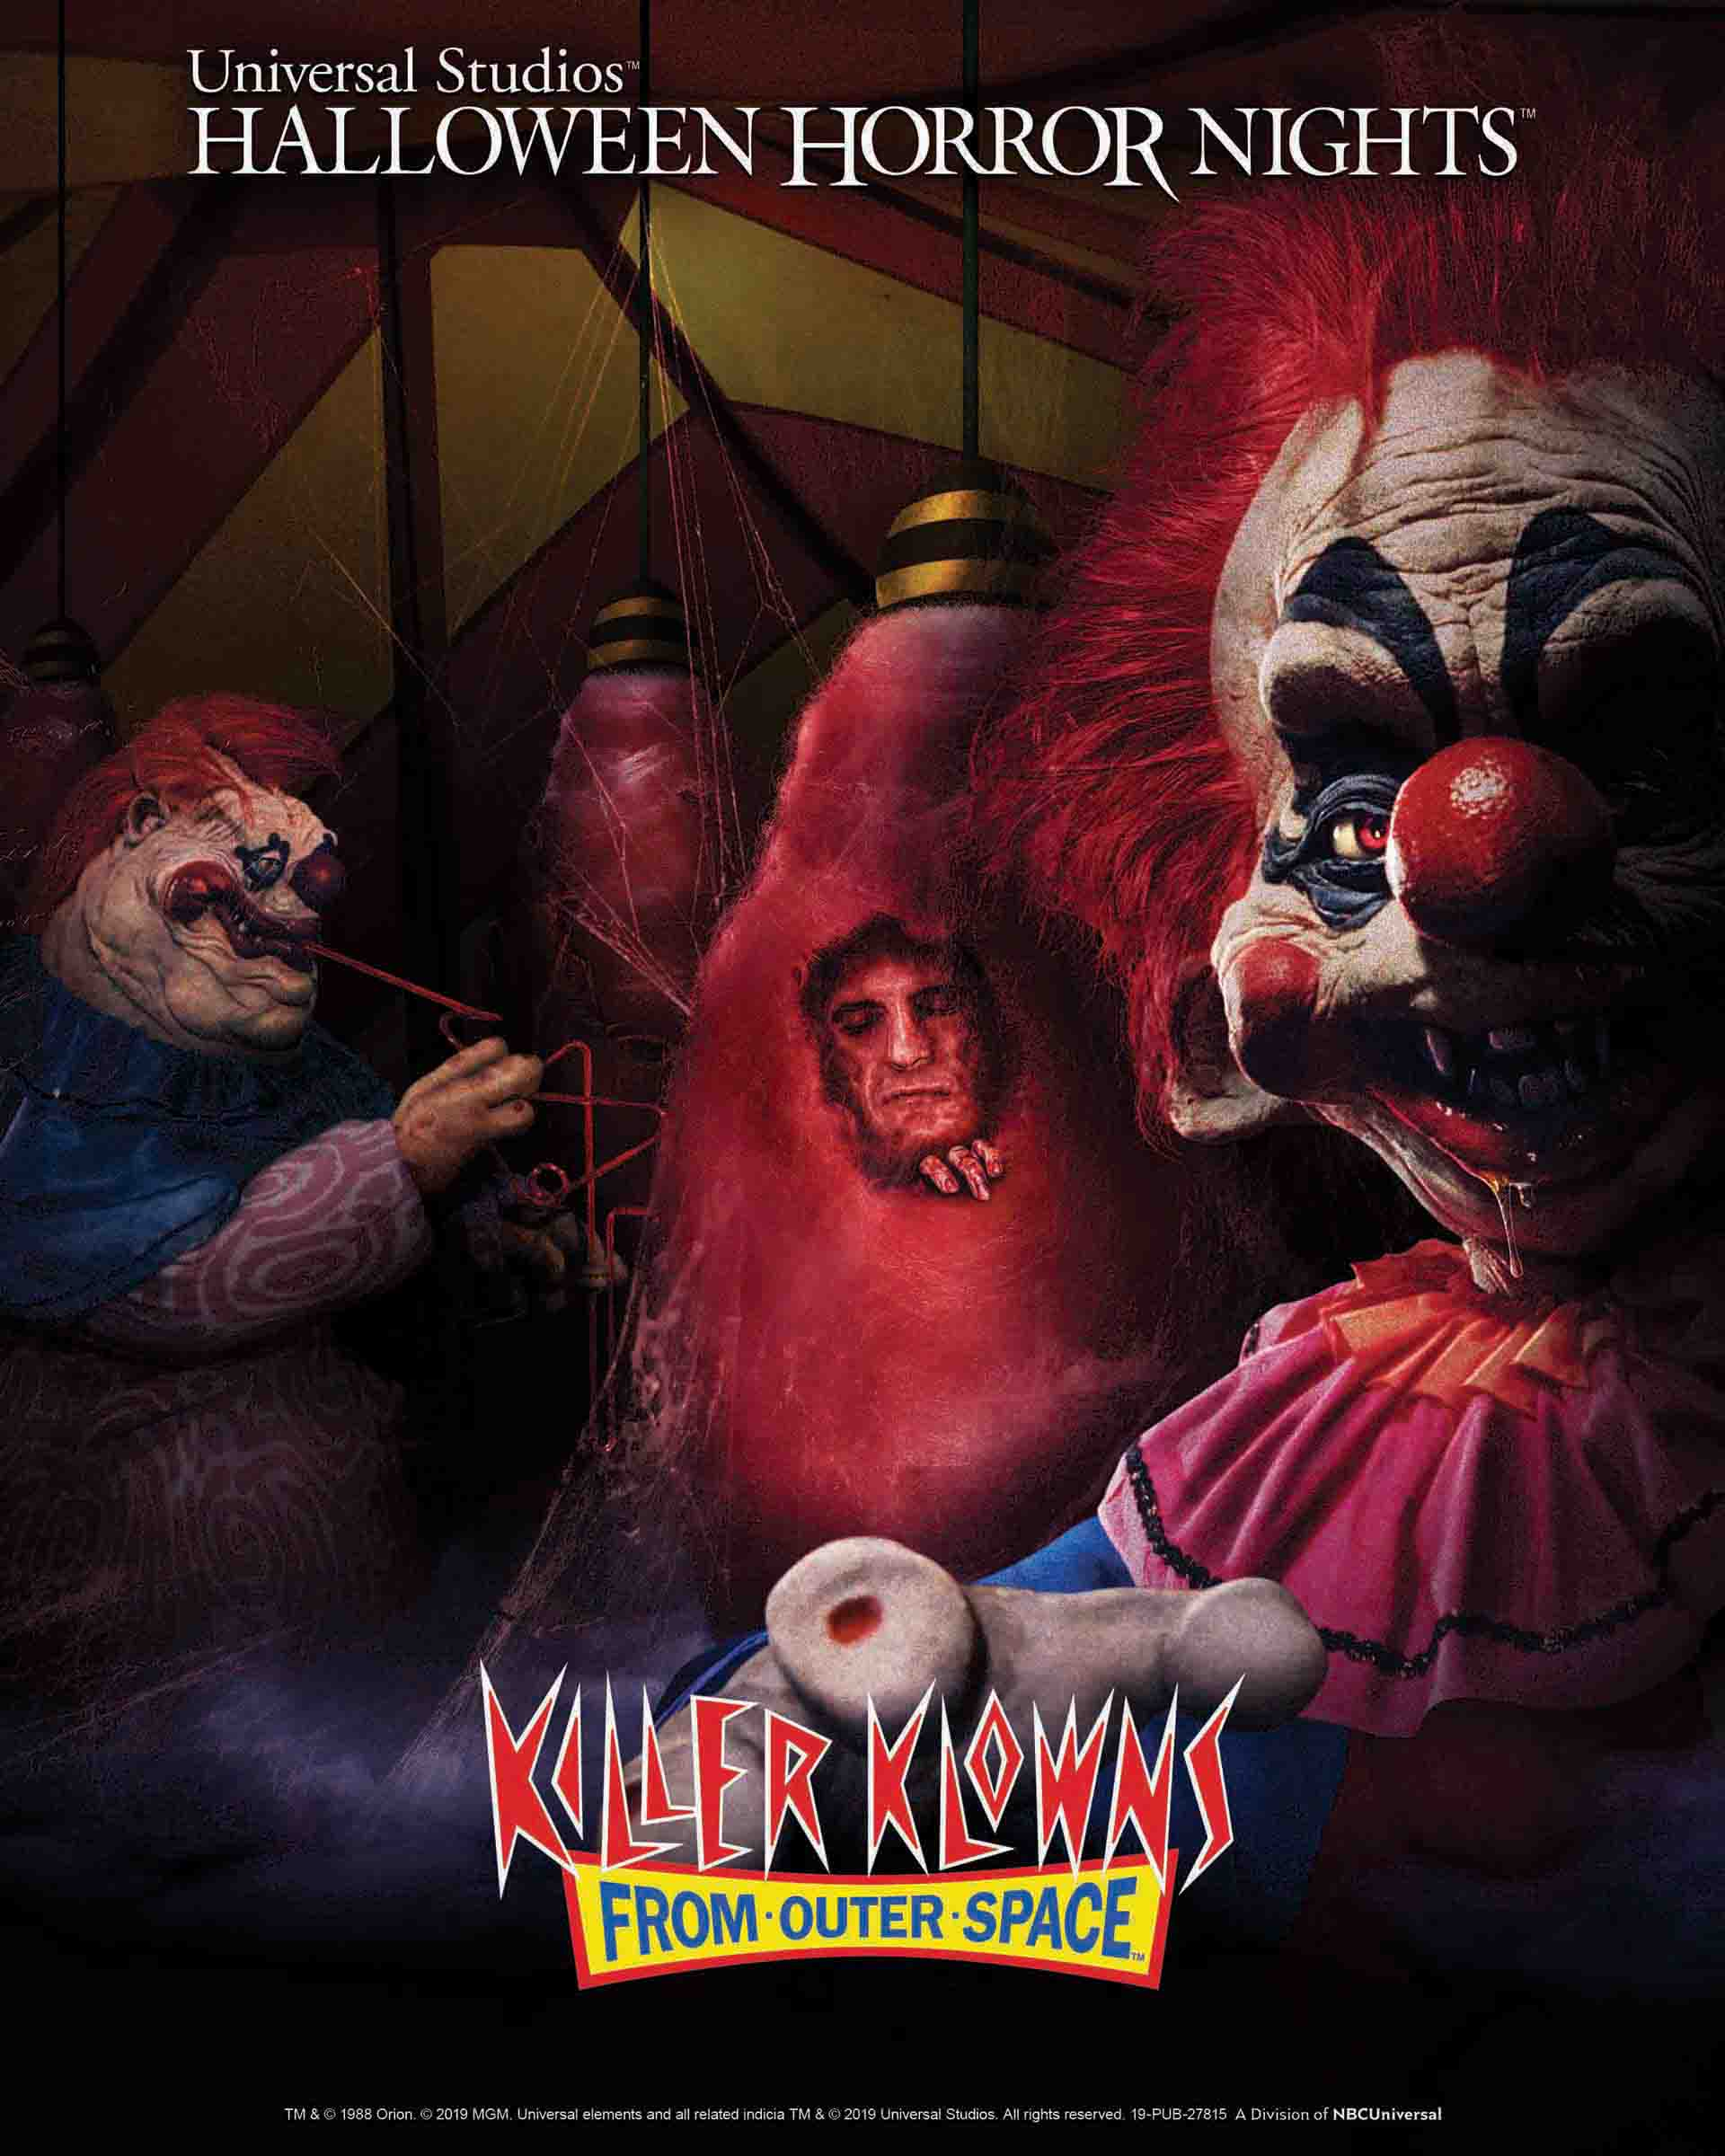 """Just announced yesterday and coming to Horror Nights  this  year… bring in the Klowns!   Universal City, CA & Orlando, FL.  – Metro Goldwyn Mayer's (MGM) """"Killer Klowns from Outer Space"""" lands at this year's """"Halloween Horror Nights"""" in all-new chilling mazes at  Universal Studios Hollywood  and  Universal Orlando Resort  – bringing together the most twisted scenes and ghastly gags from the popular horror sci-fi film at the nation's premier Halloween events.  Based on the cult 1980s film favorite, the """"Killer Klowns from Outer Space"""" mazes will transport guests to the sleepy small town of Crescent Cove, taken over by a pack of murderous clown-like creatures. Guests will be lured by the sweet smell of cotton candy and ice-cream and find themselves in an otherworldly circus tent where they'll come face-to-face with the crazed klowns and their sinister, side-splitting antics. As they make their way through the Big Top Space Ship, guests will witness diabolical klowns making cotton candy cocoons from unsuspecting victims and will realize the joke's on them as they are next to become the gooey snack. From one shrieking klown to the next, the mazes will lead guests through the doomed community of Crescent Cove to an eerie amusement park closed for the season. Trapped in a terrifying funhouse full of killer klowns, guests will be left screaming as there's no stopping this twisted three-ring circus."""